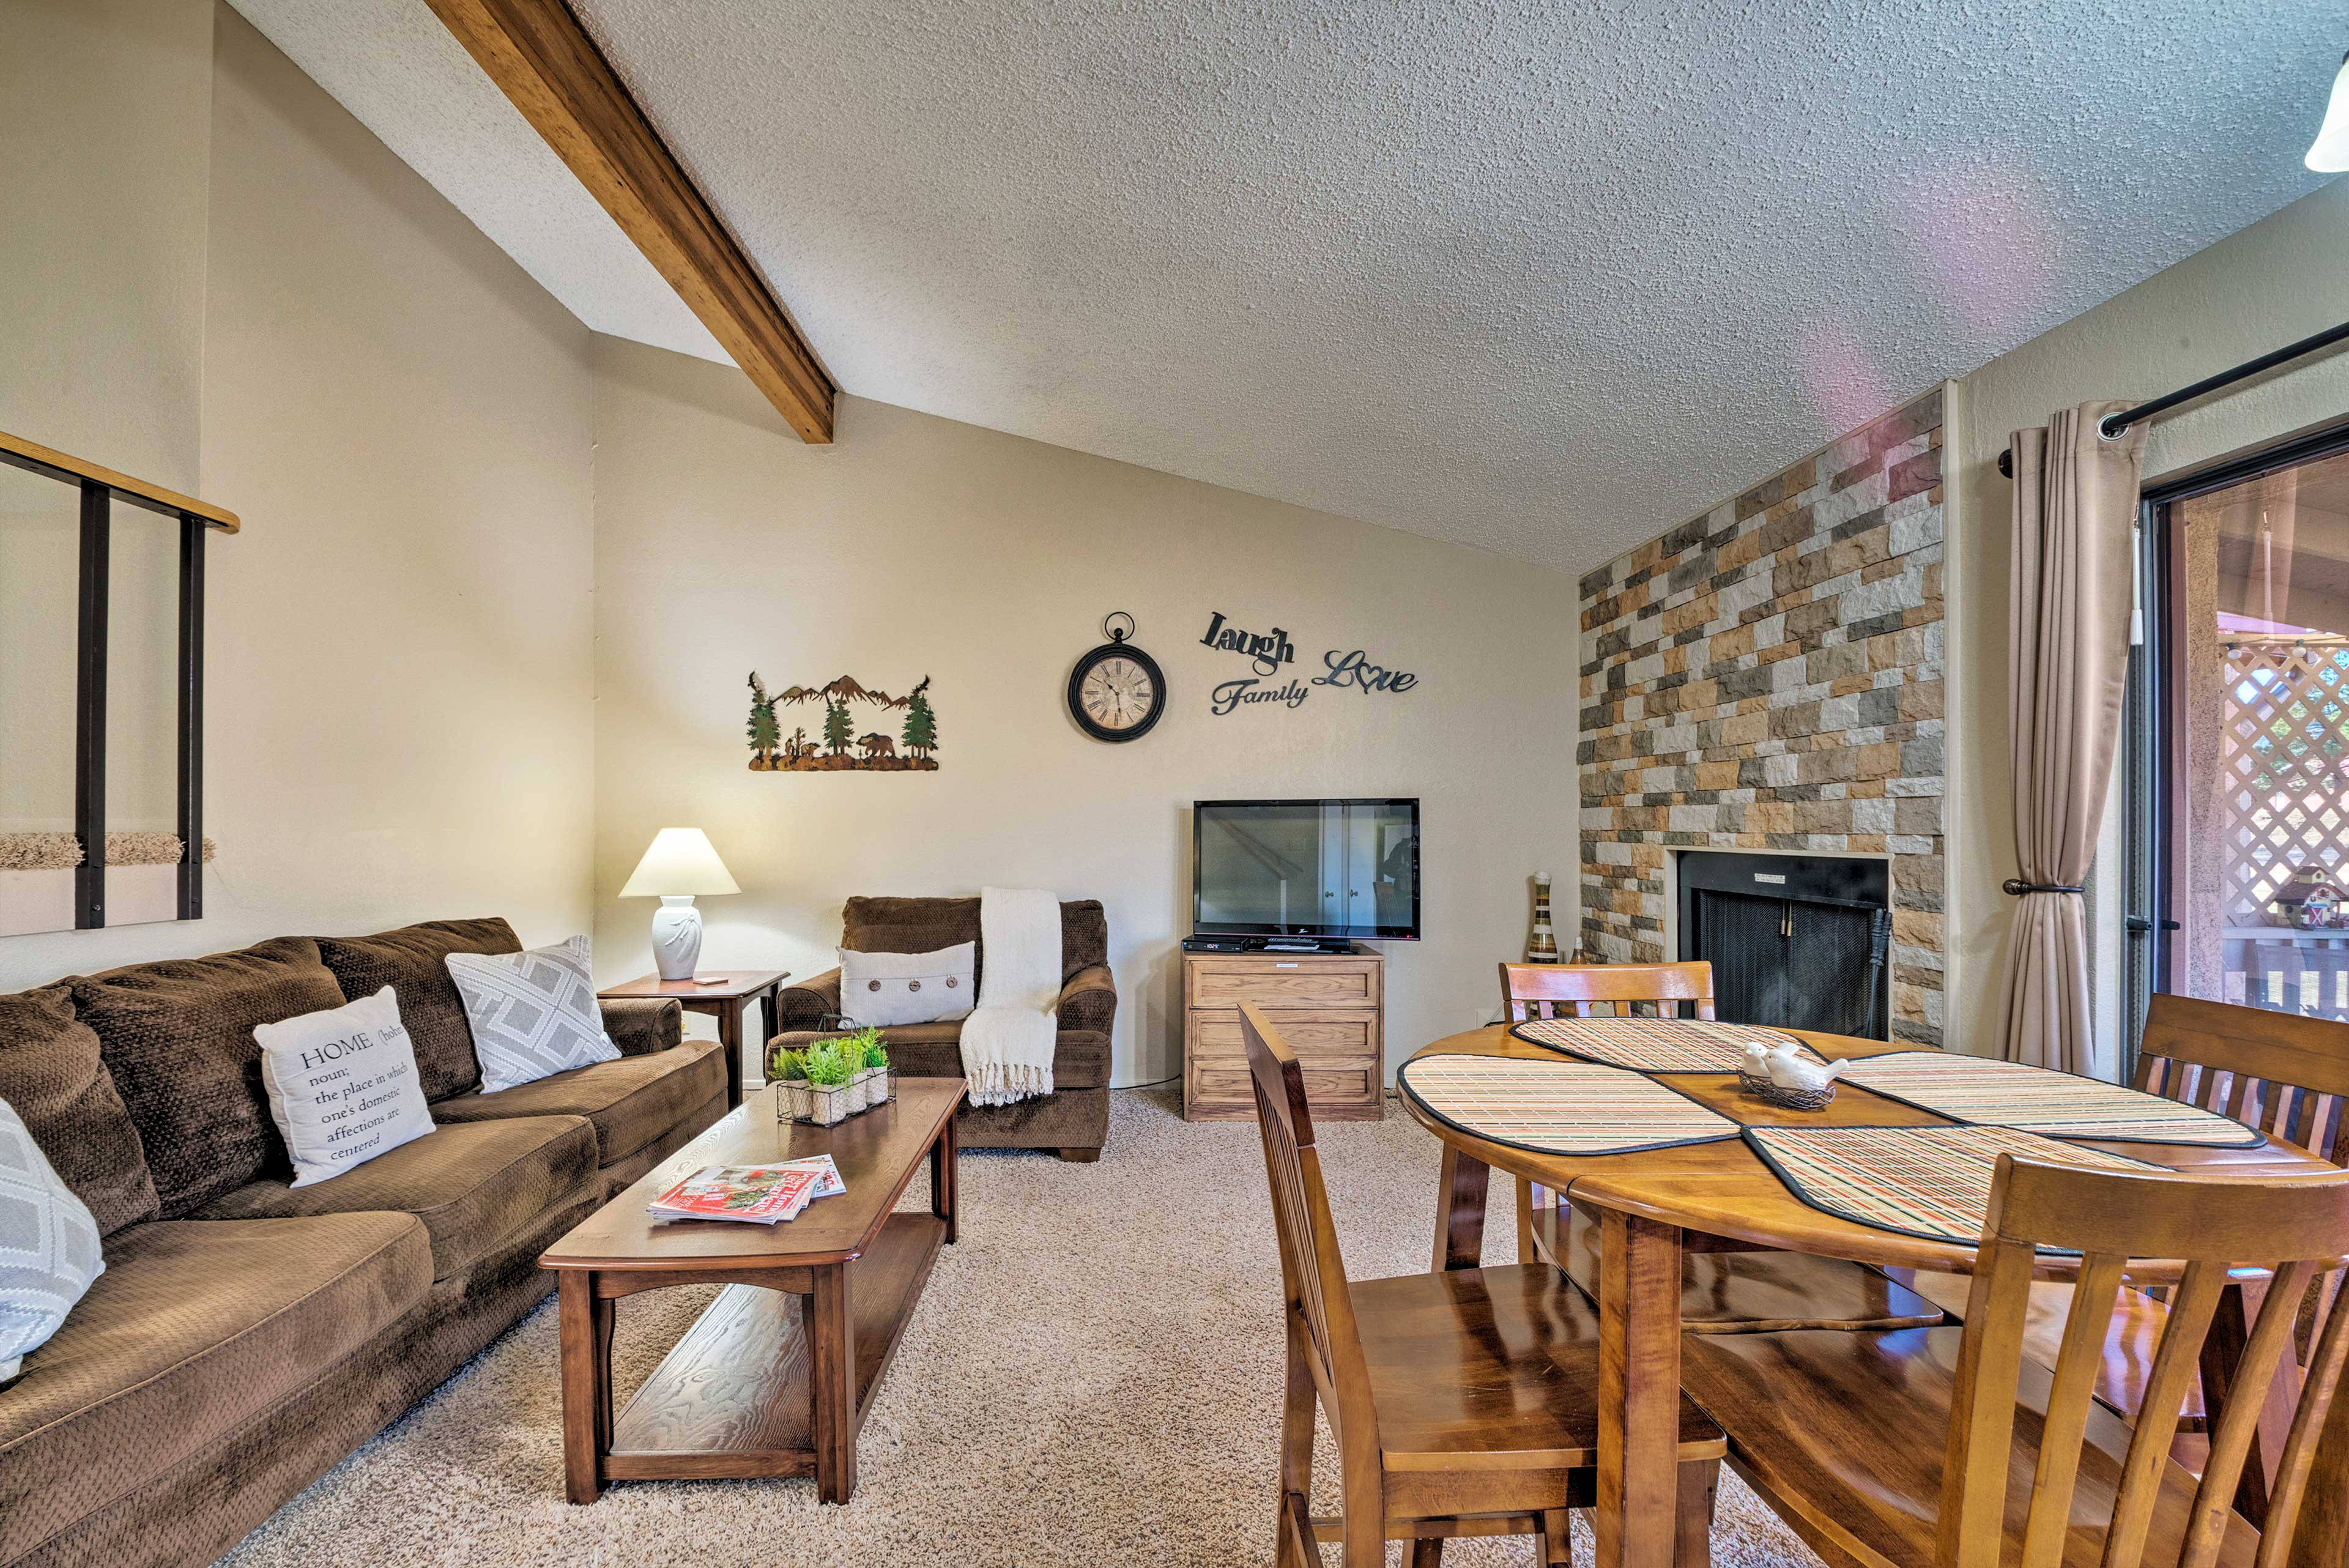 Inside, this condo boasts 2 bedrooms, 2 bathrooms, and sleeps 4 guests!